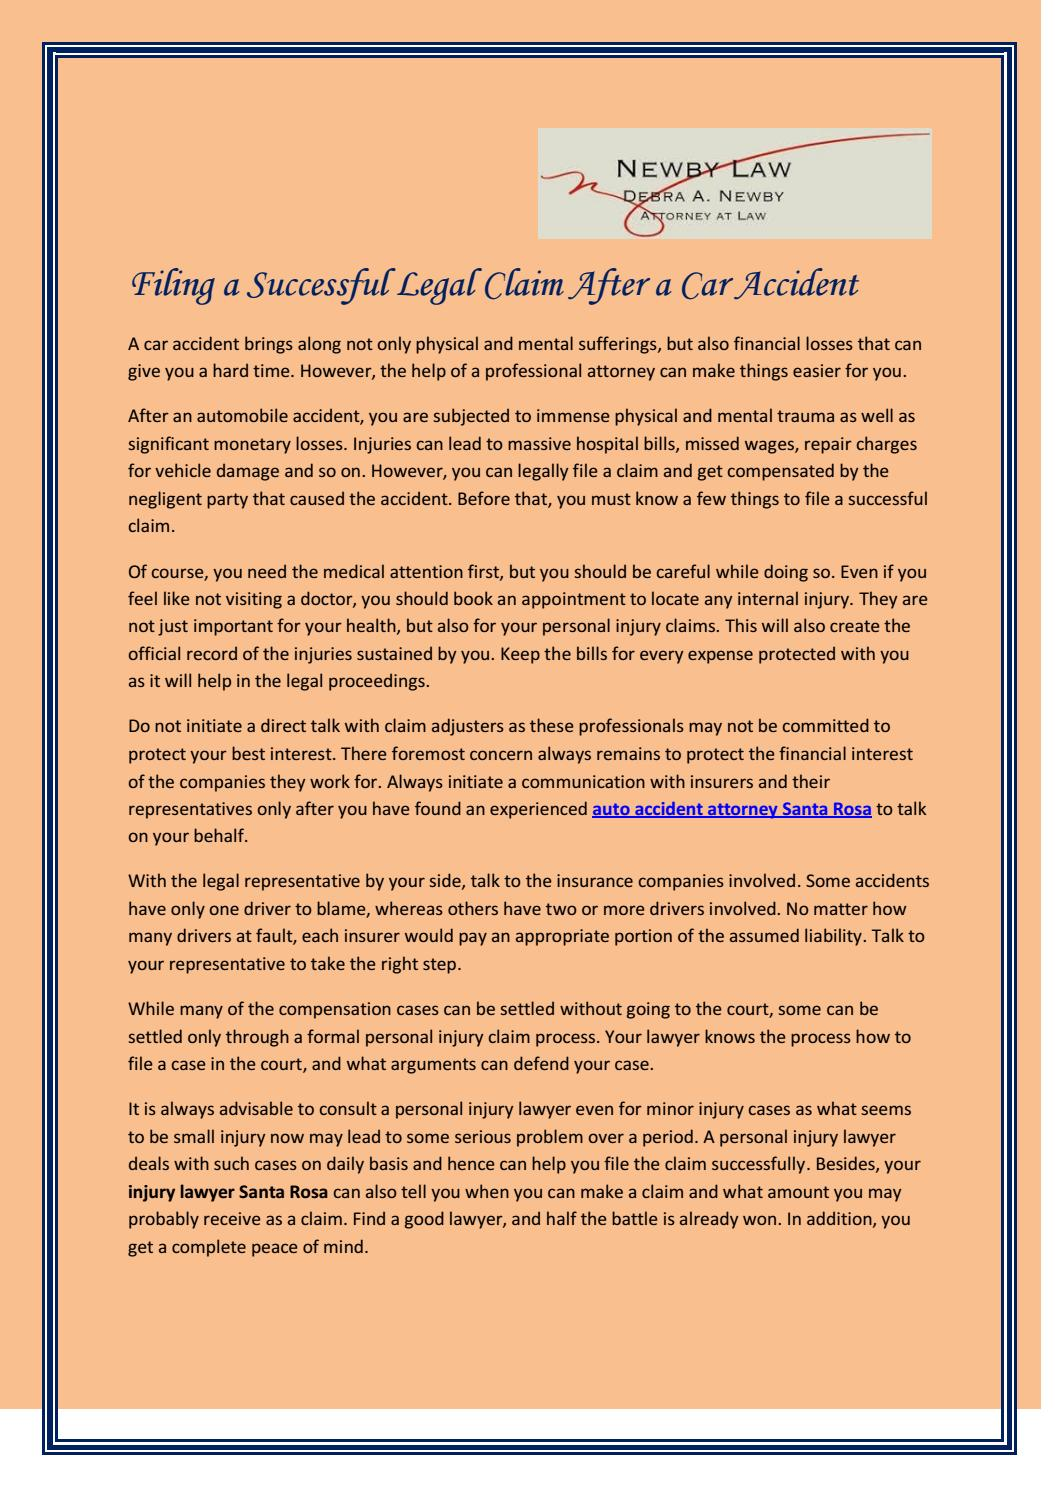 Filing a successful legal claim after a car accident by